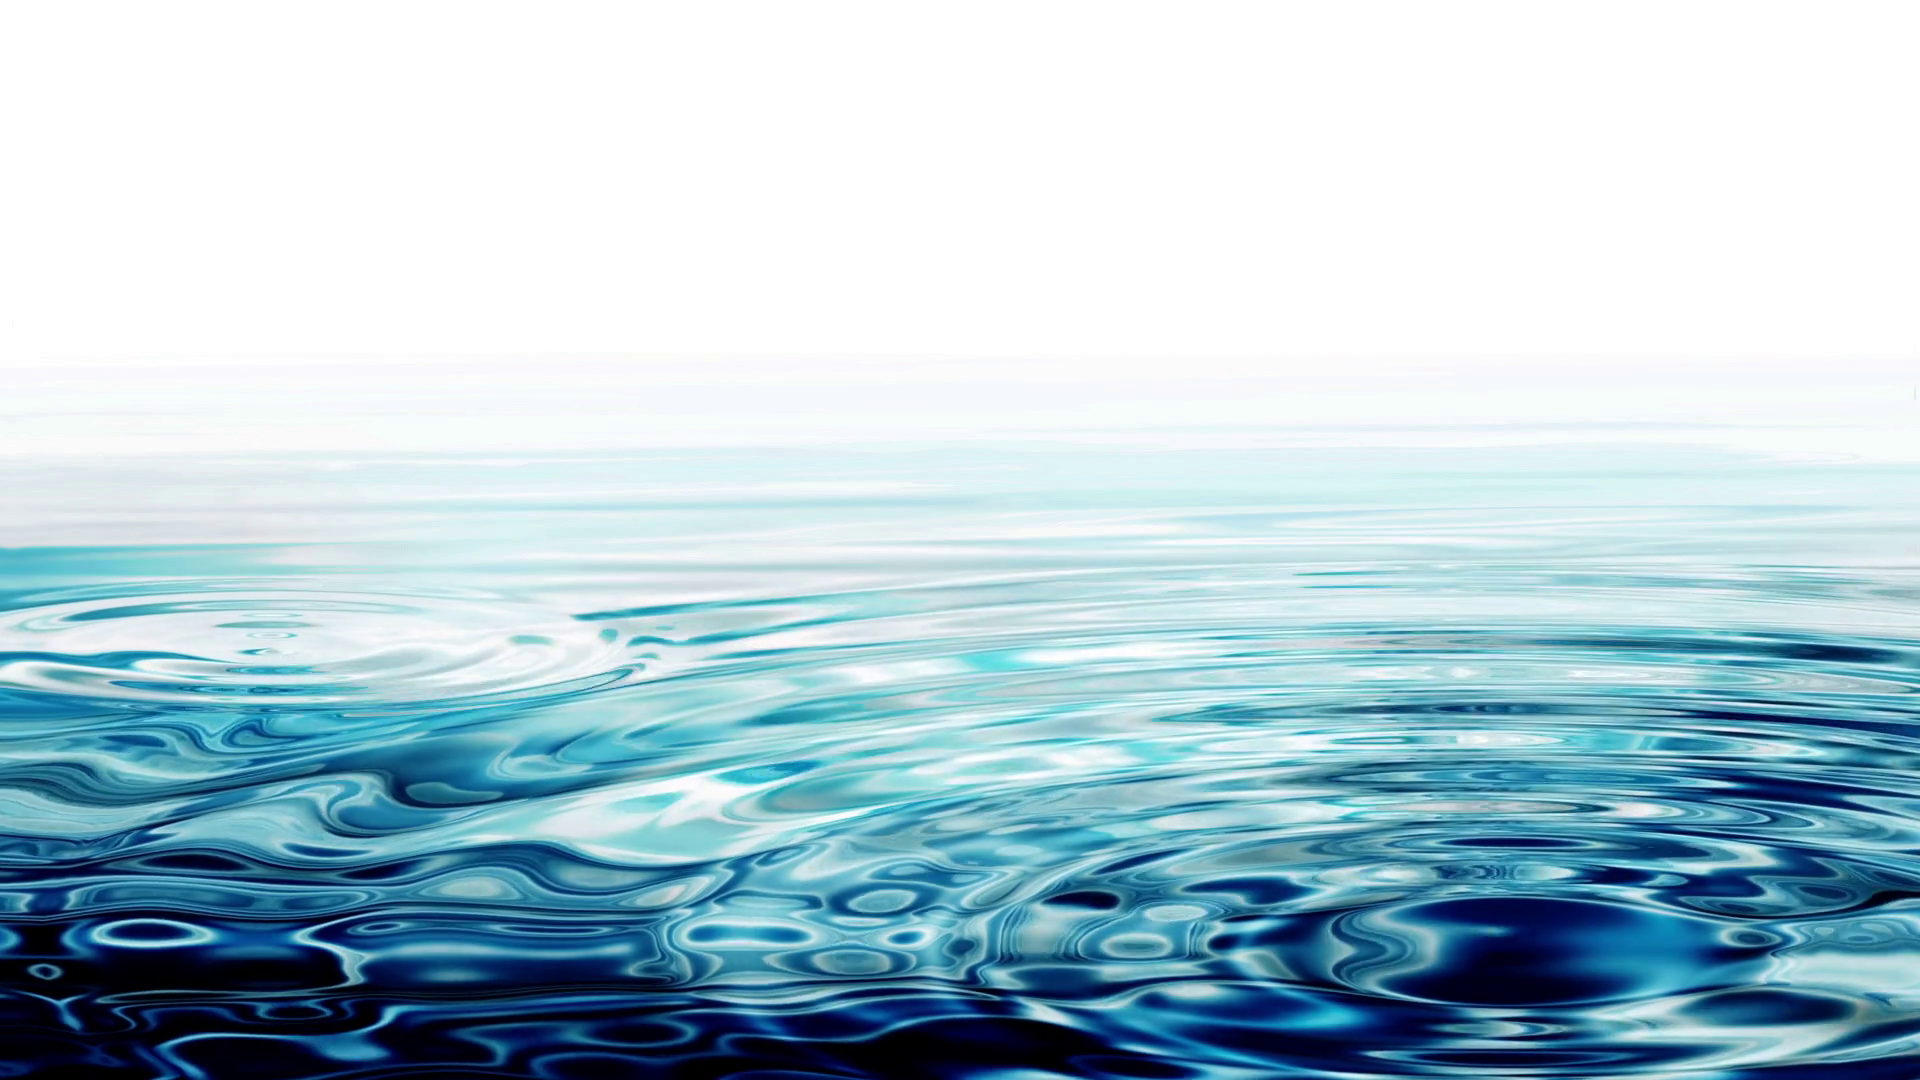 Water ripples background photo